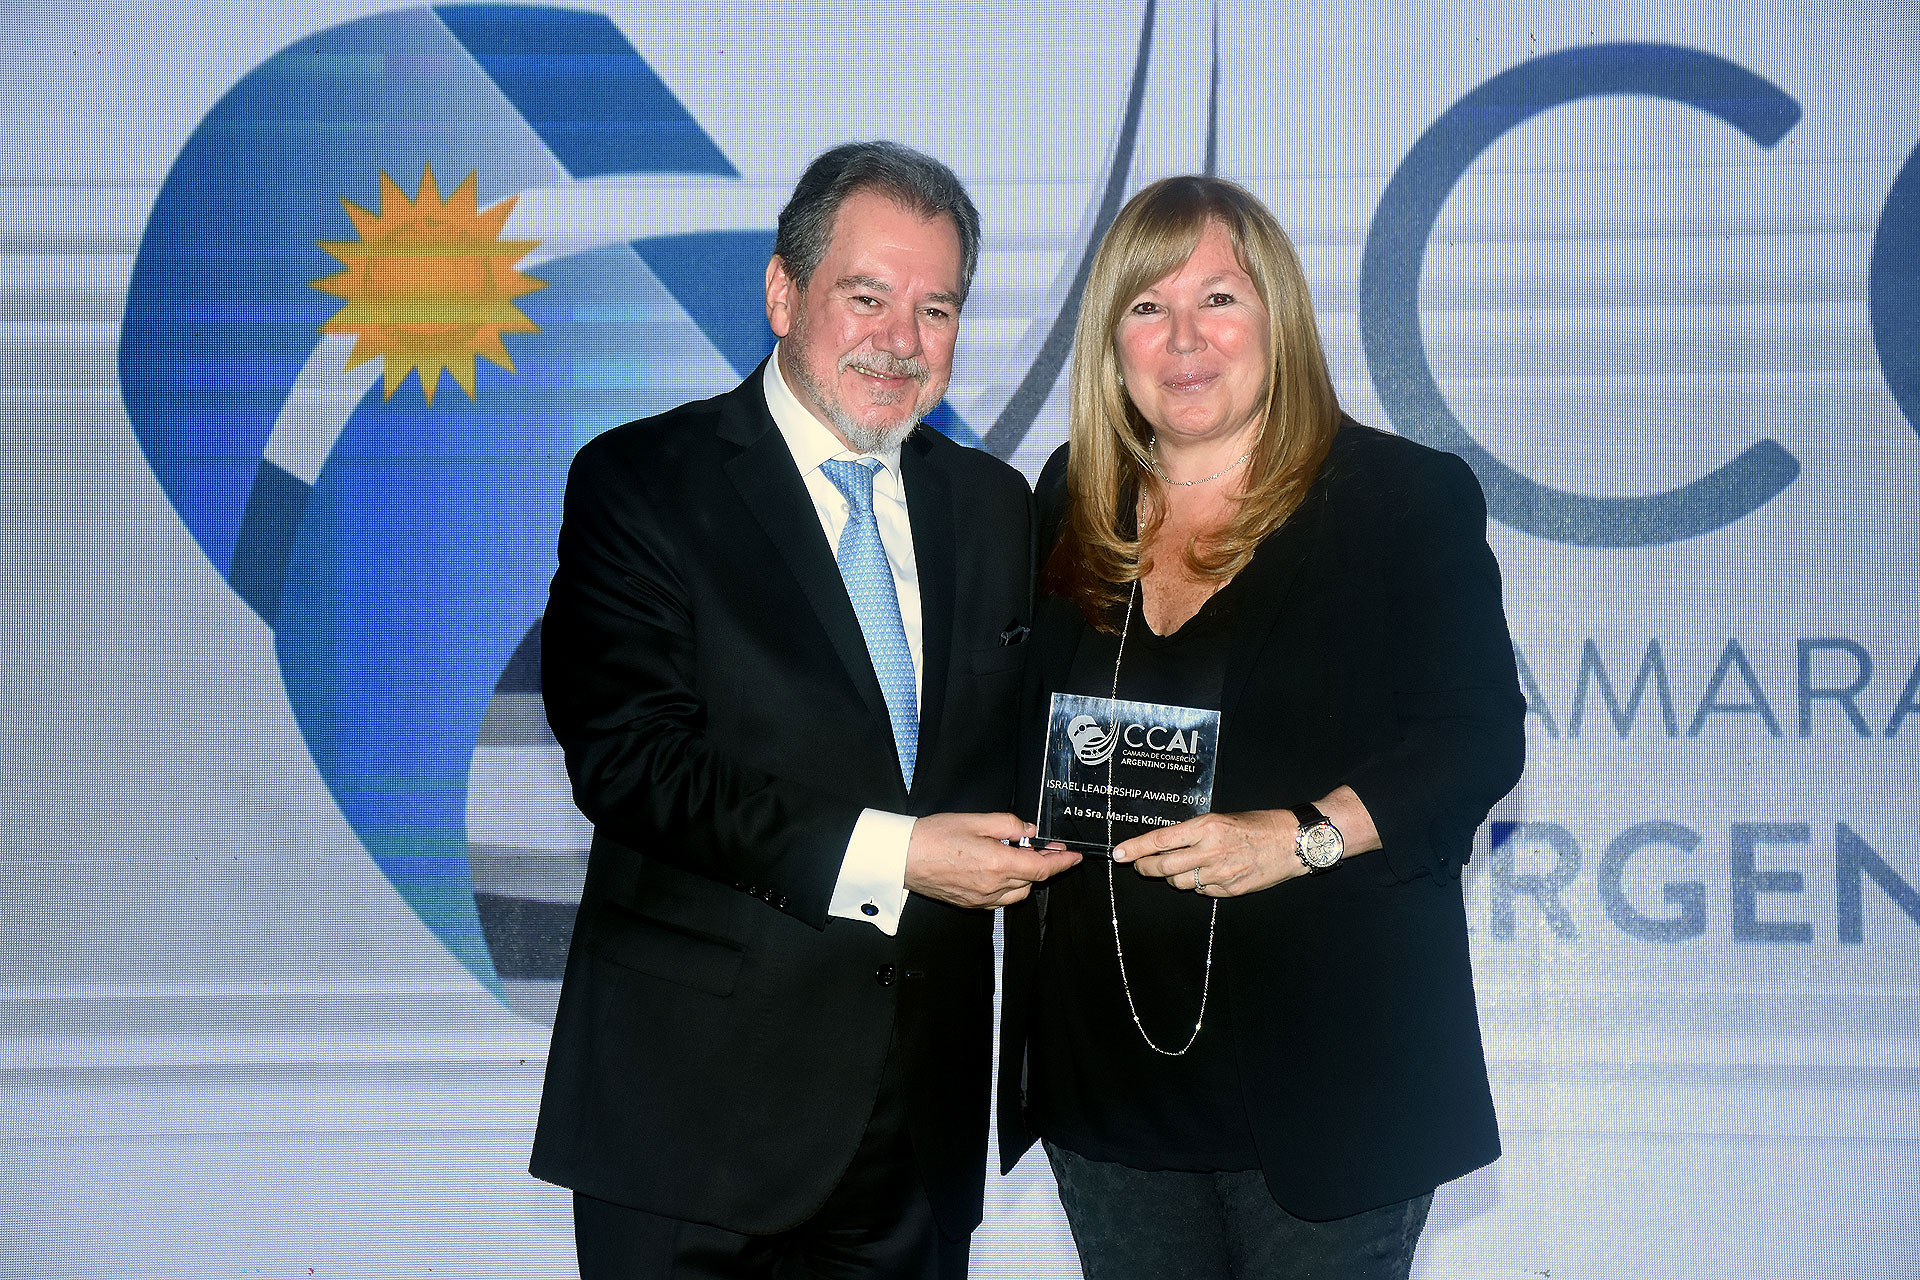 Israel Leadership Awards 2019 para Marisa Koifman, referente en la gestión de prensa, relaciones públicas, organización de eventos y marketing digital